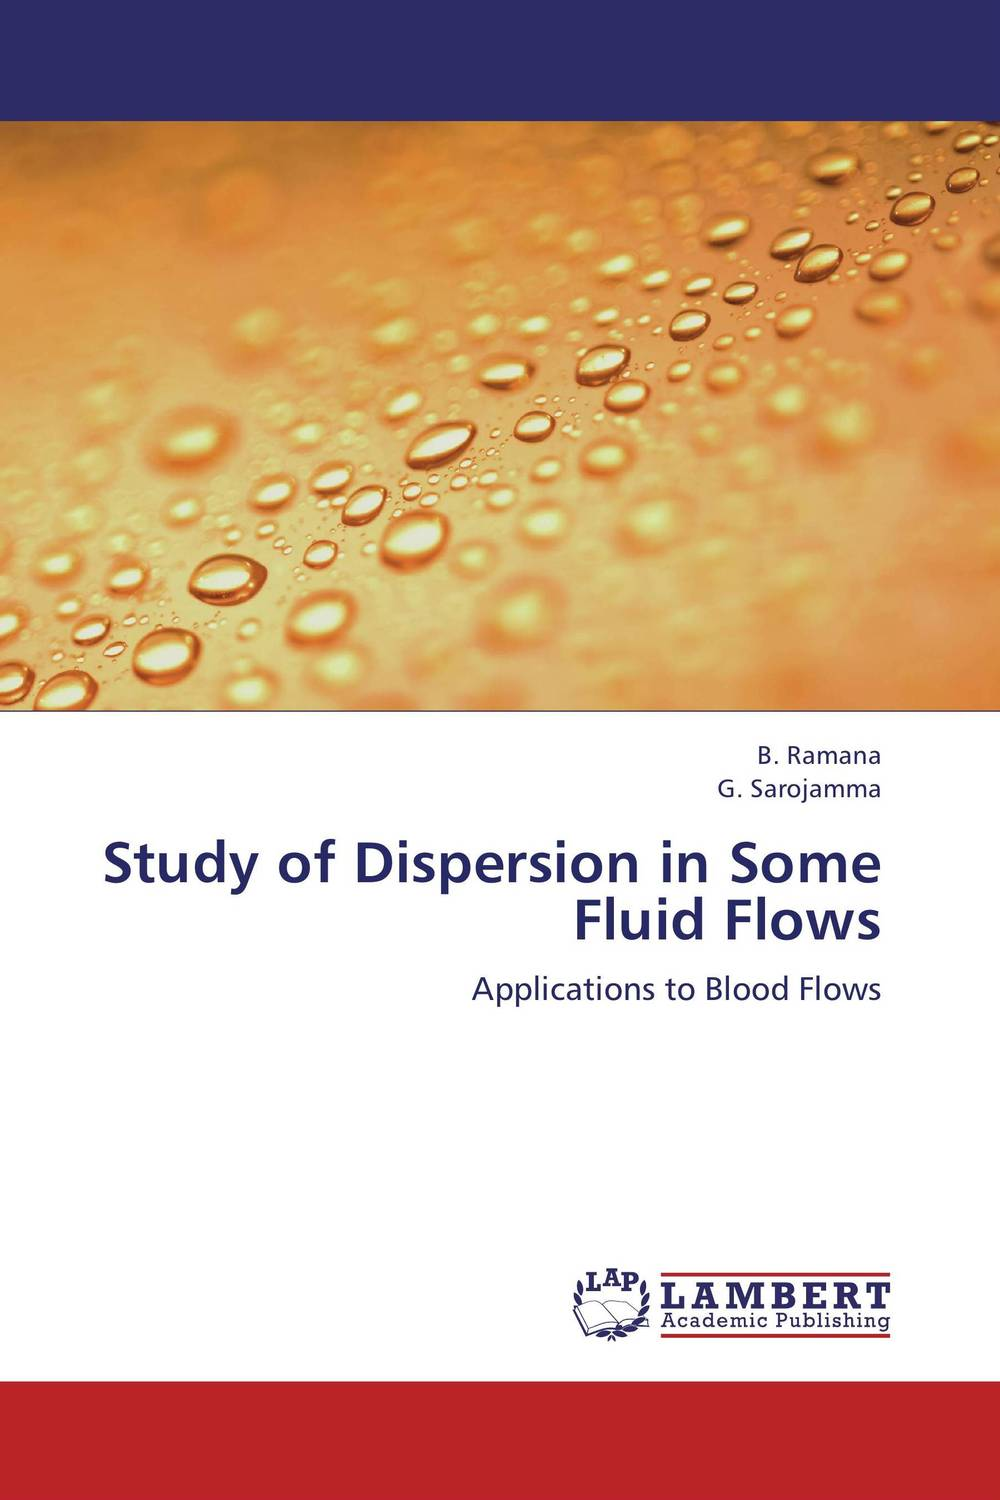 Study of Dispersion in Some Fluid Flows dispersion managed solitons